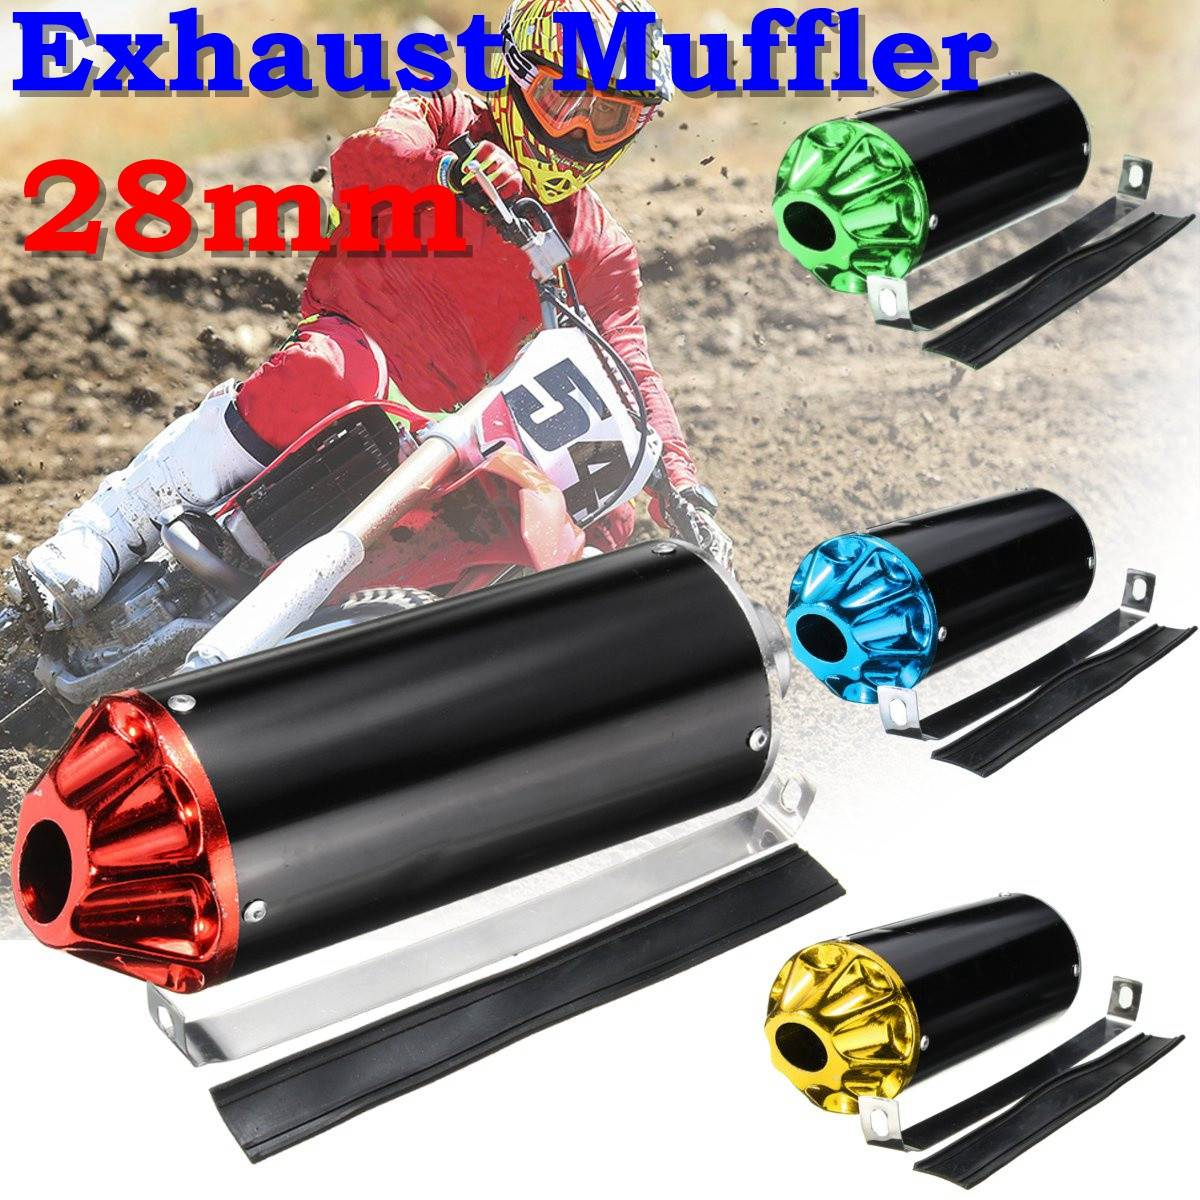 28mm Exhaust Muffler with Clamp For TTR CRF50 SSR Thumpstar 90cc 110cc 125cc Dirt Pit Bike